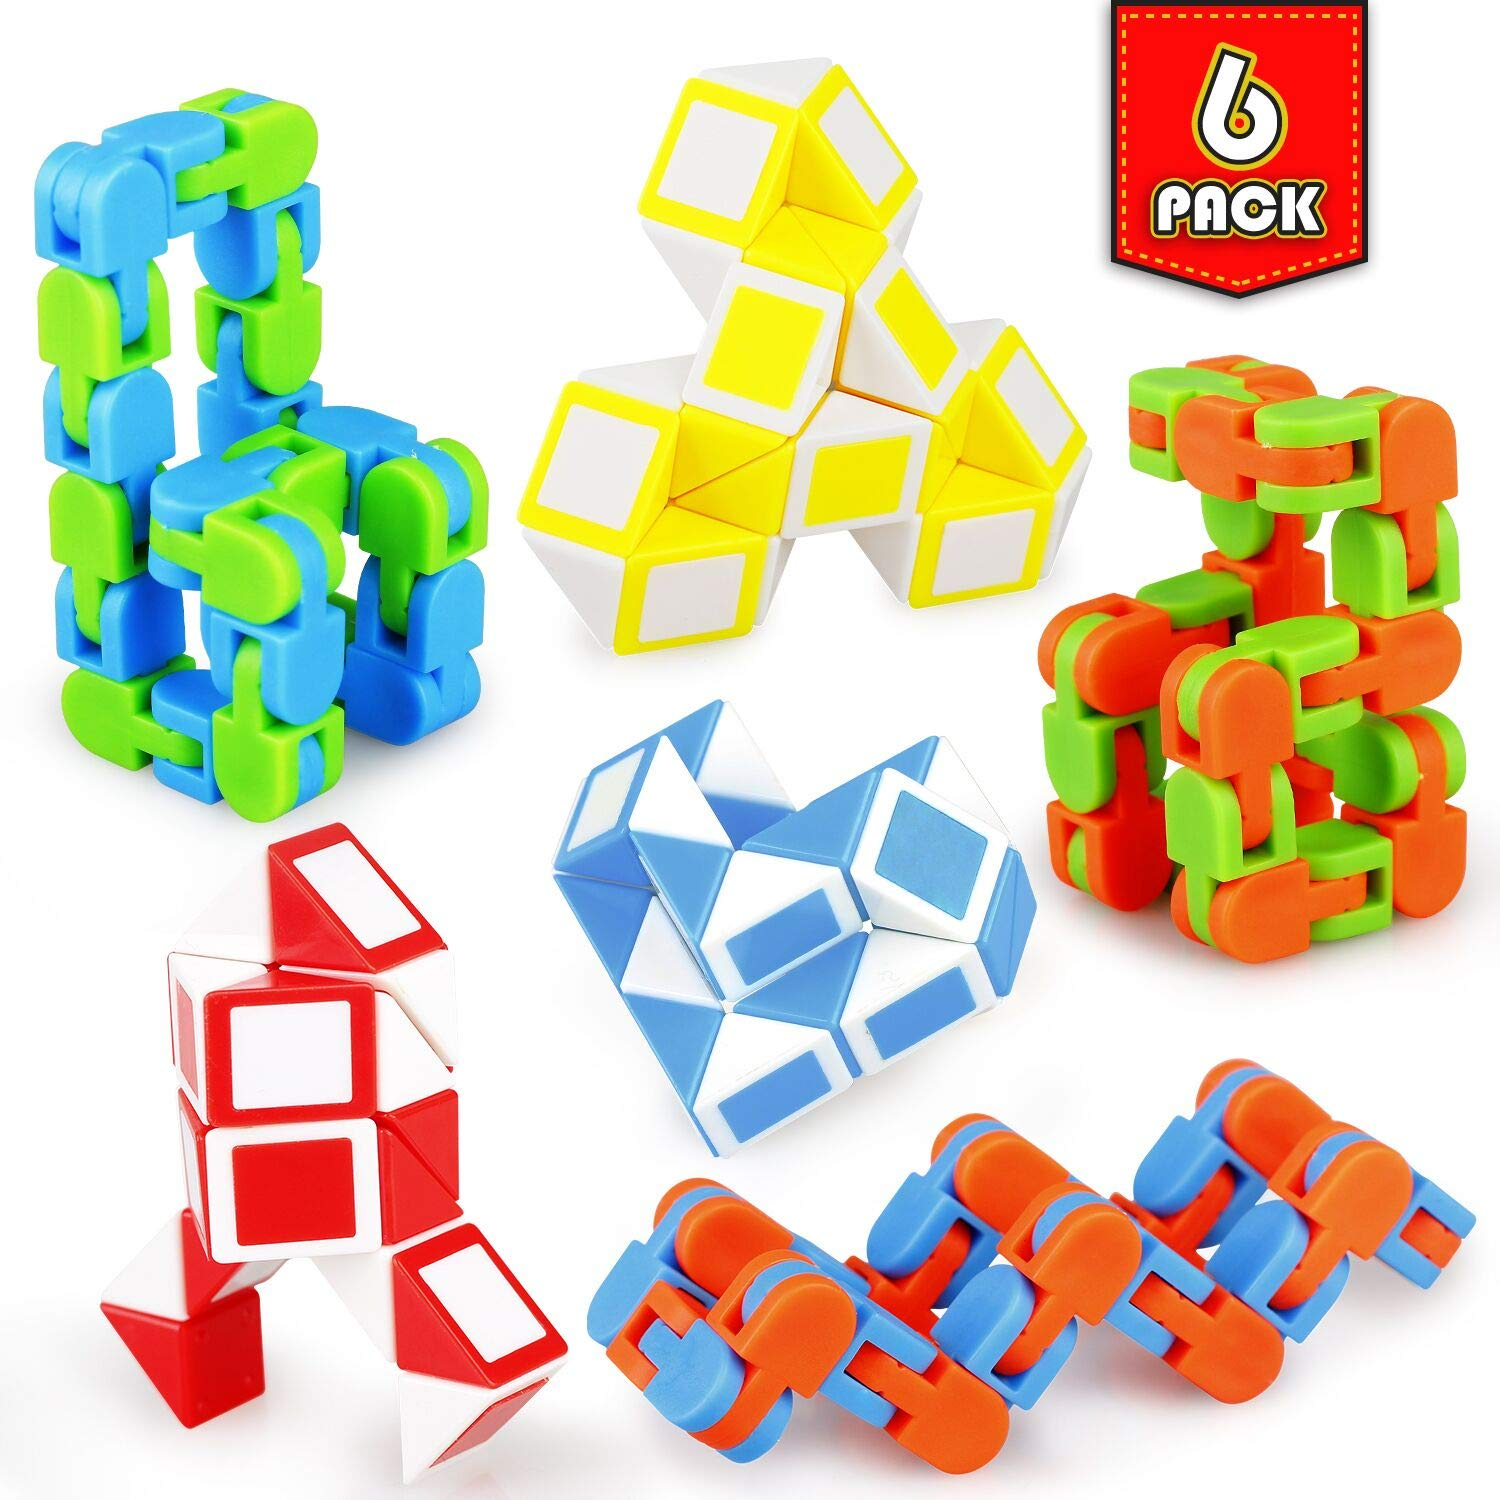 Ganowo 6 Pack Fidget Snake Cube Easter Basket Stuffers Party Favors Classroom Rewards Prizes Goody Bag Fillers for Kids Toddlers Teens